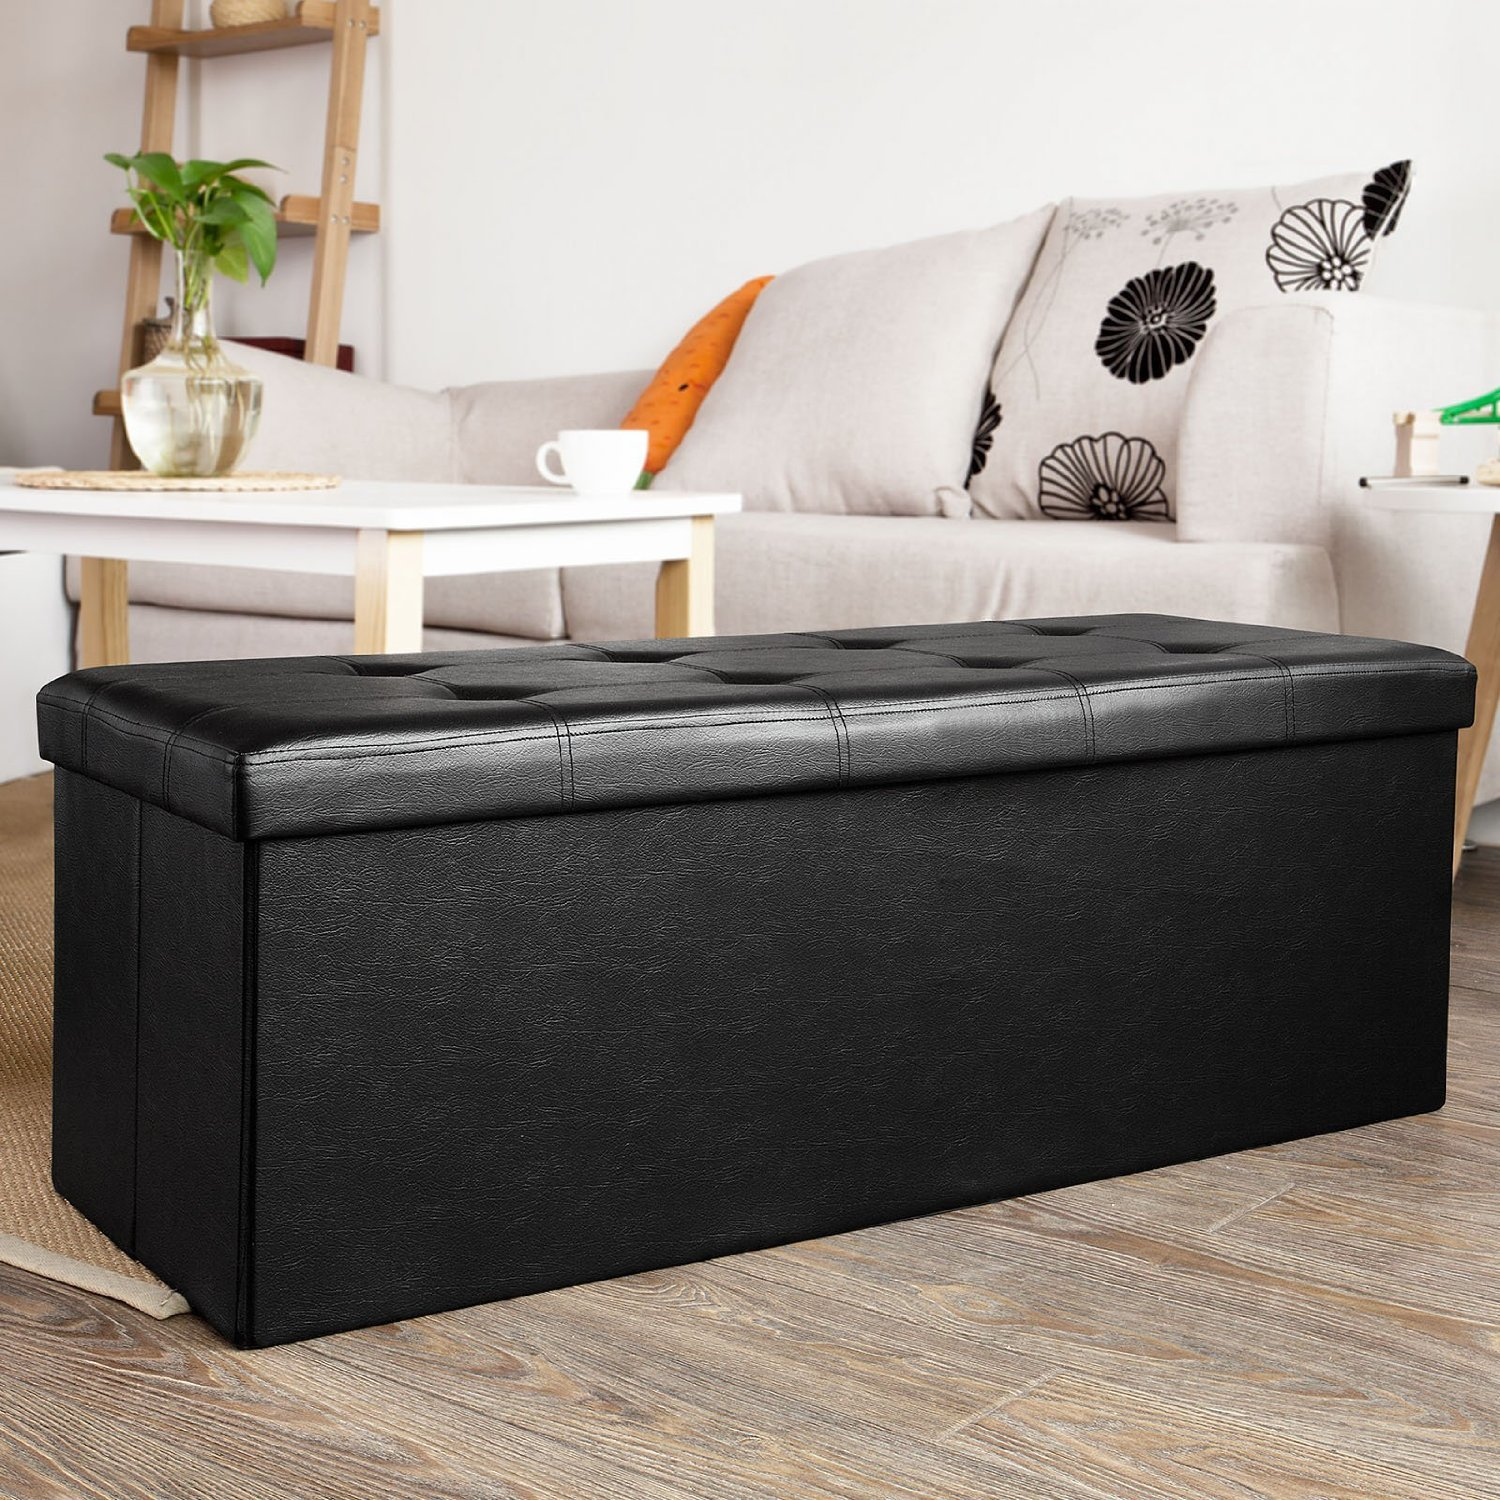 #AD5B1E SoBuy Storage Ottoman Folding Storage Bench With Seat Cushion FSS16 EL  with 1500x1500 px of Recommended Ottoman Bench Seats 15001500 save image @ avoidforclosure.info